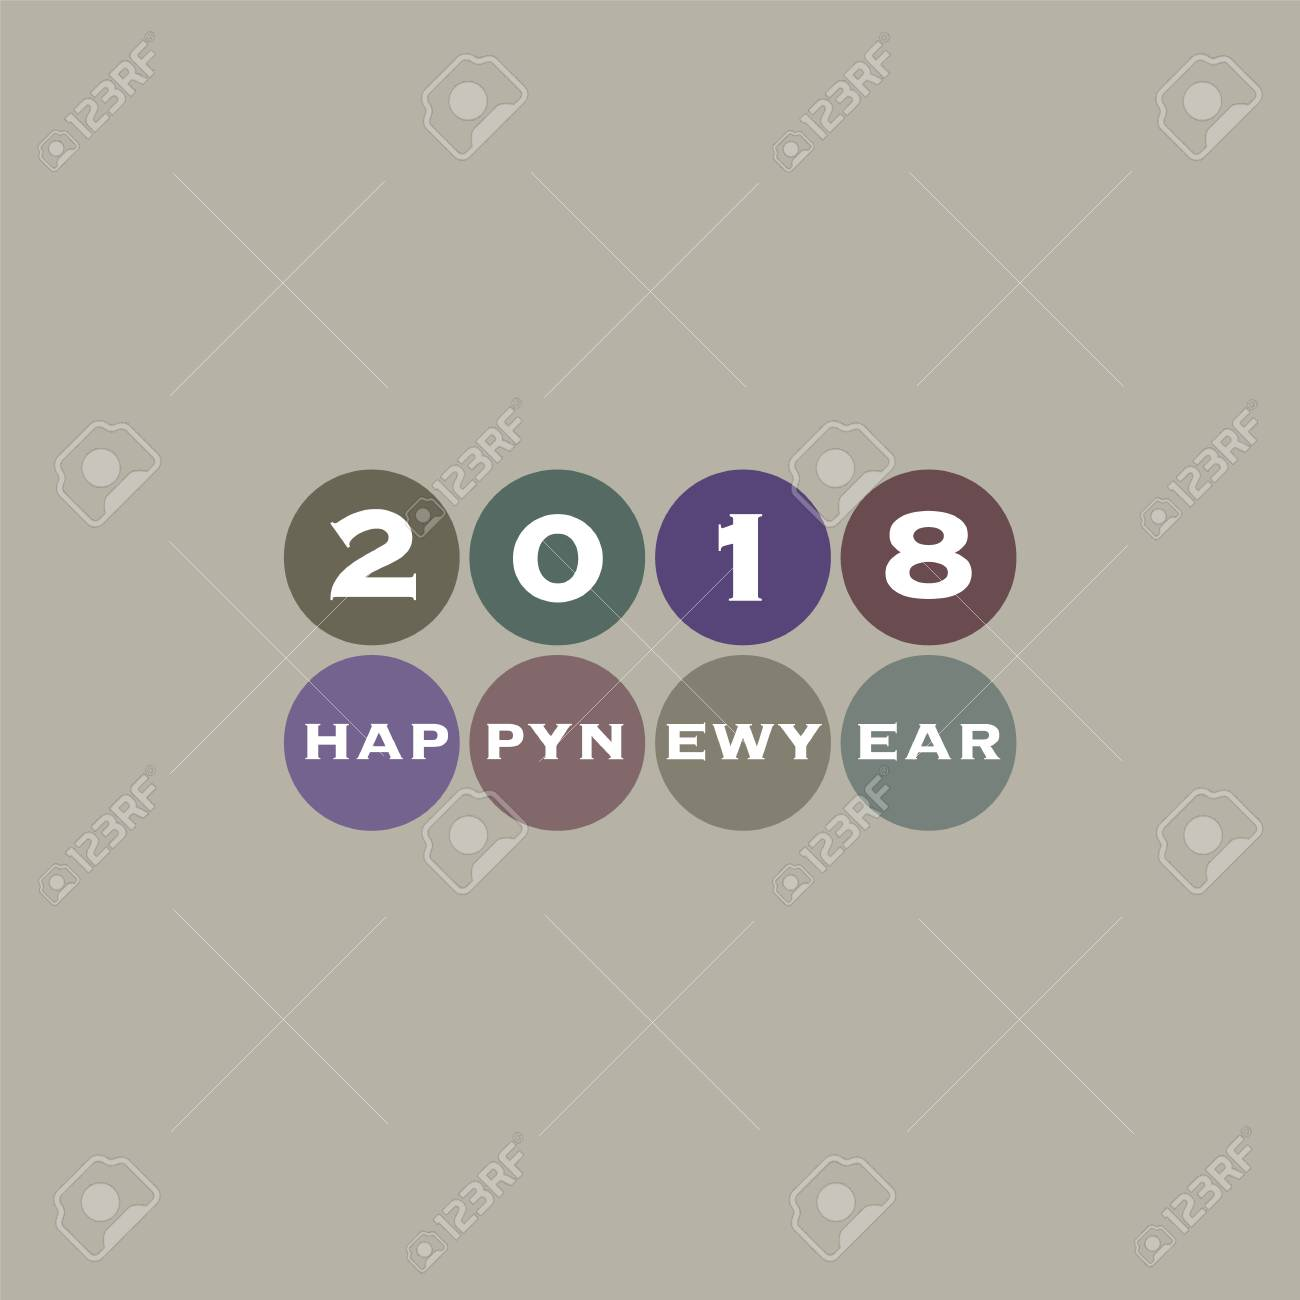 best wishes modern simple minimal happy new year card or cover background stock vector